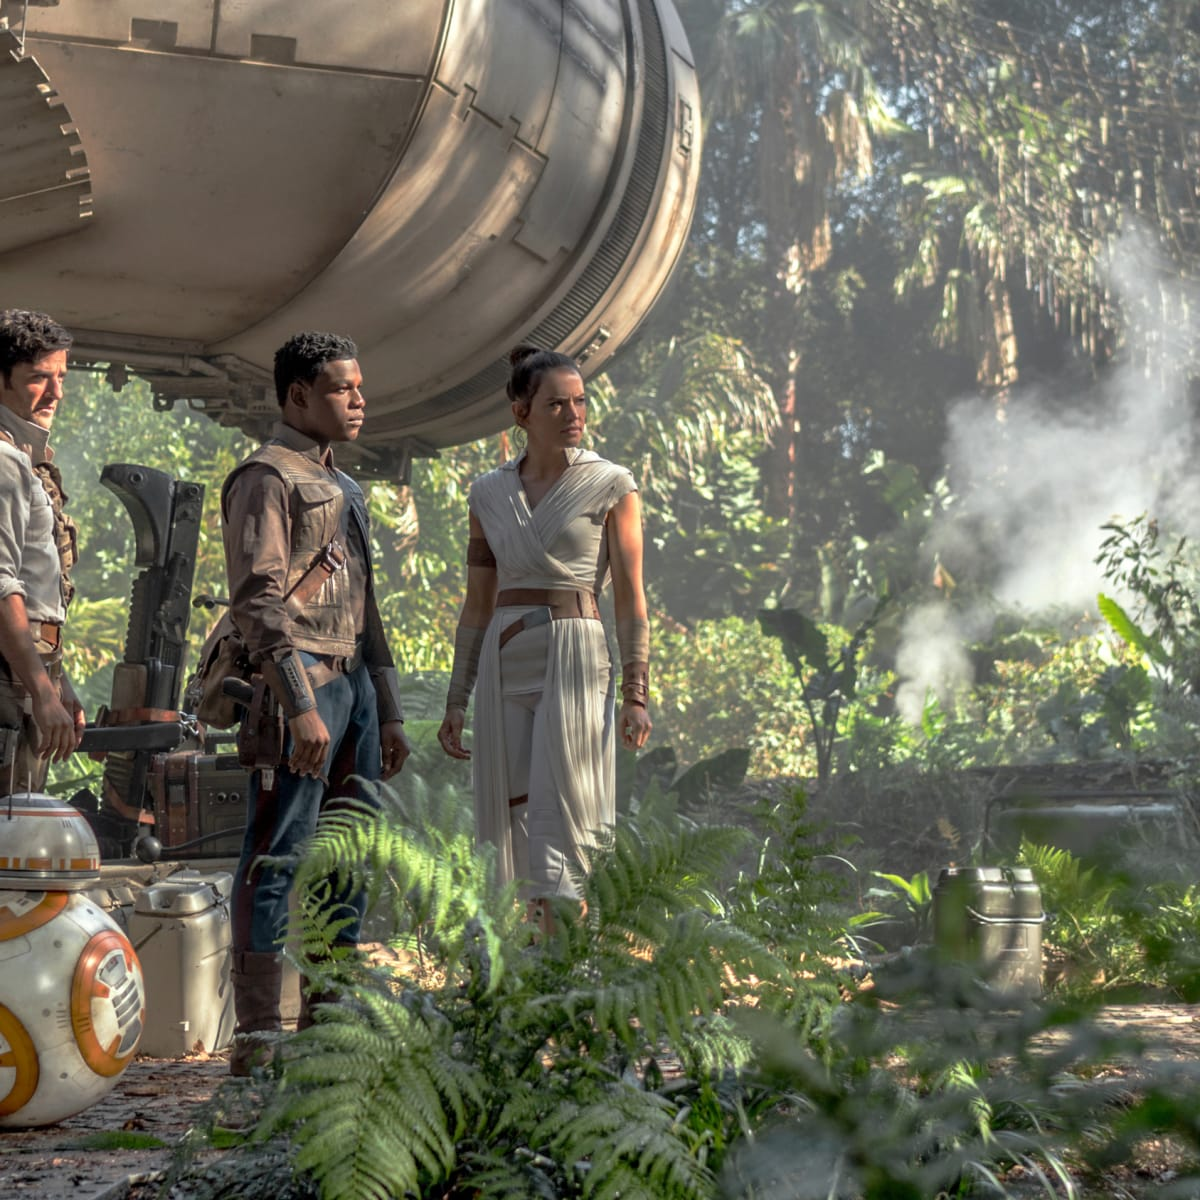 Star Wars The Rise Of Skywalker Costumes Pay Homage To Princess Leia And Han Solo Fashionista